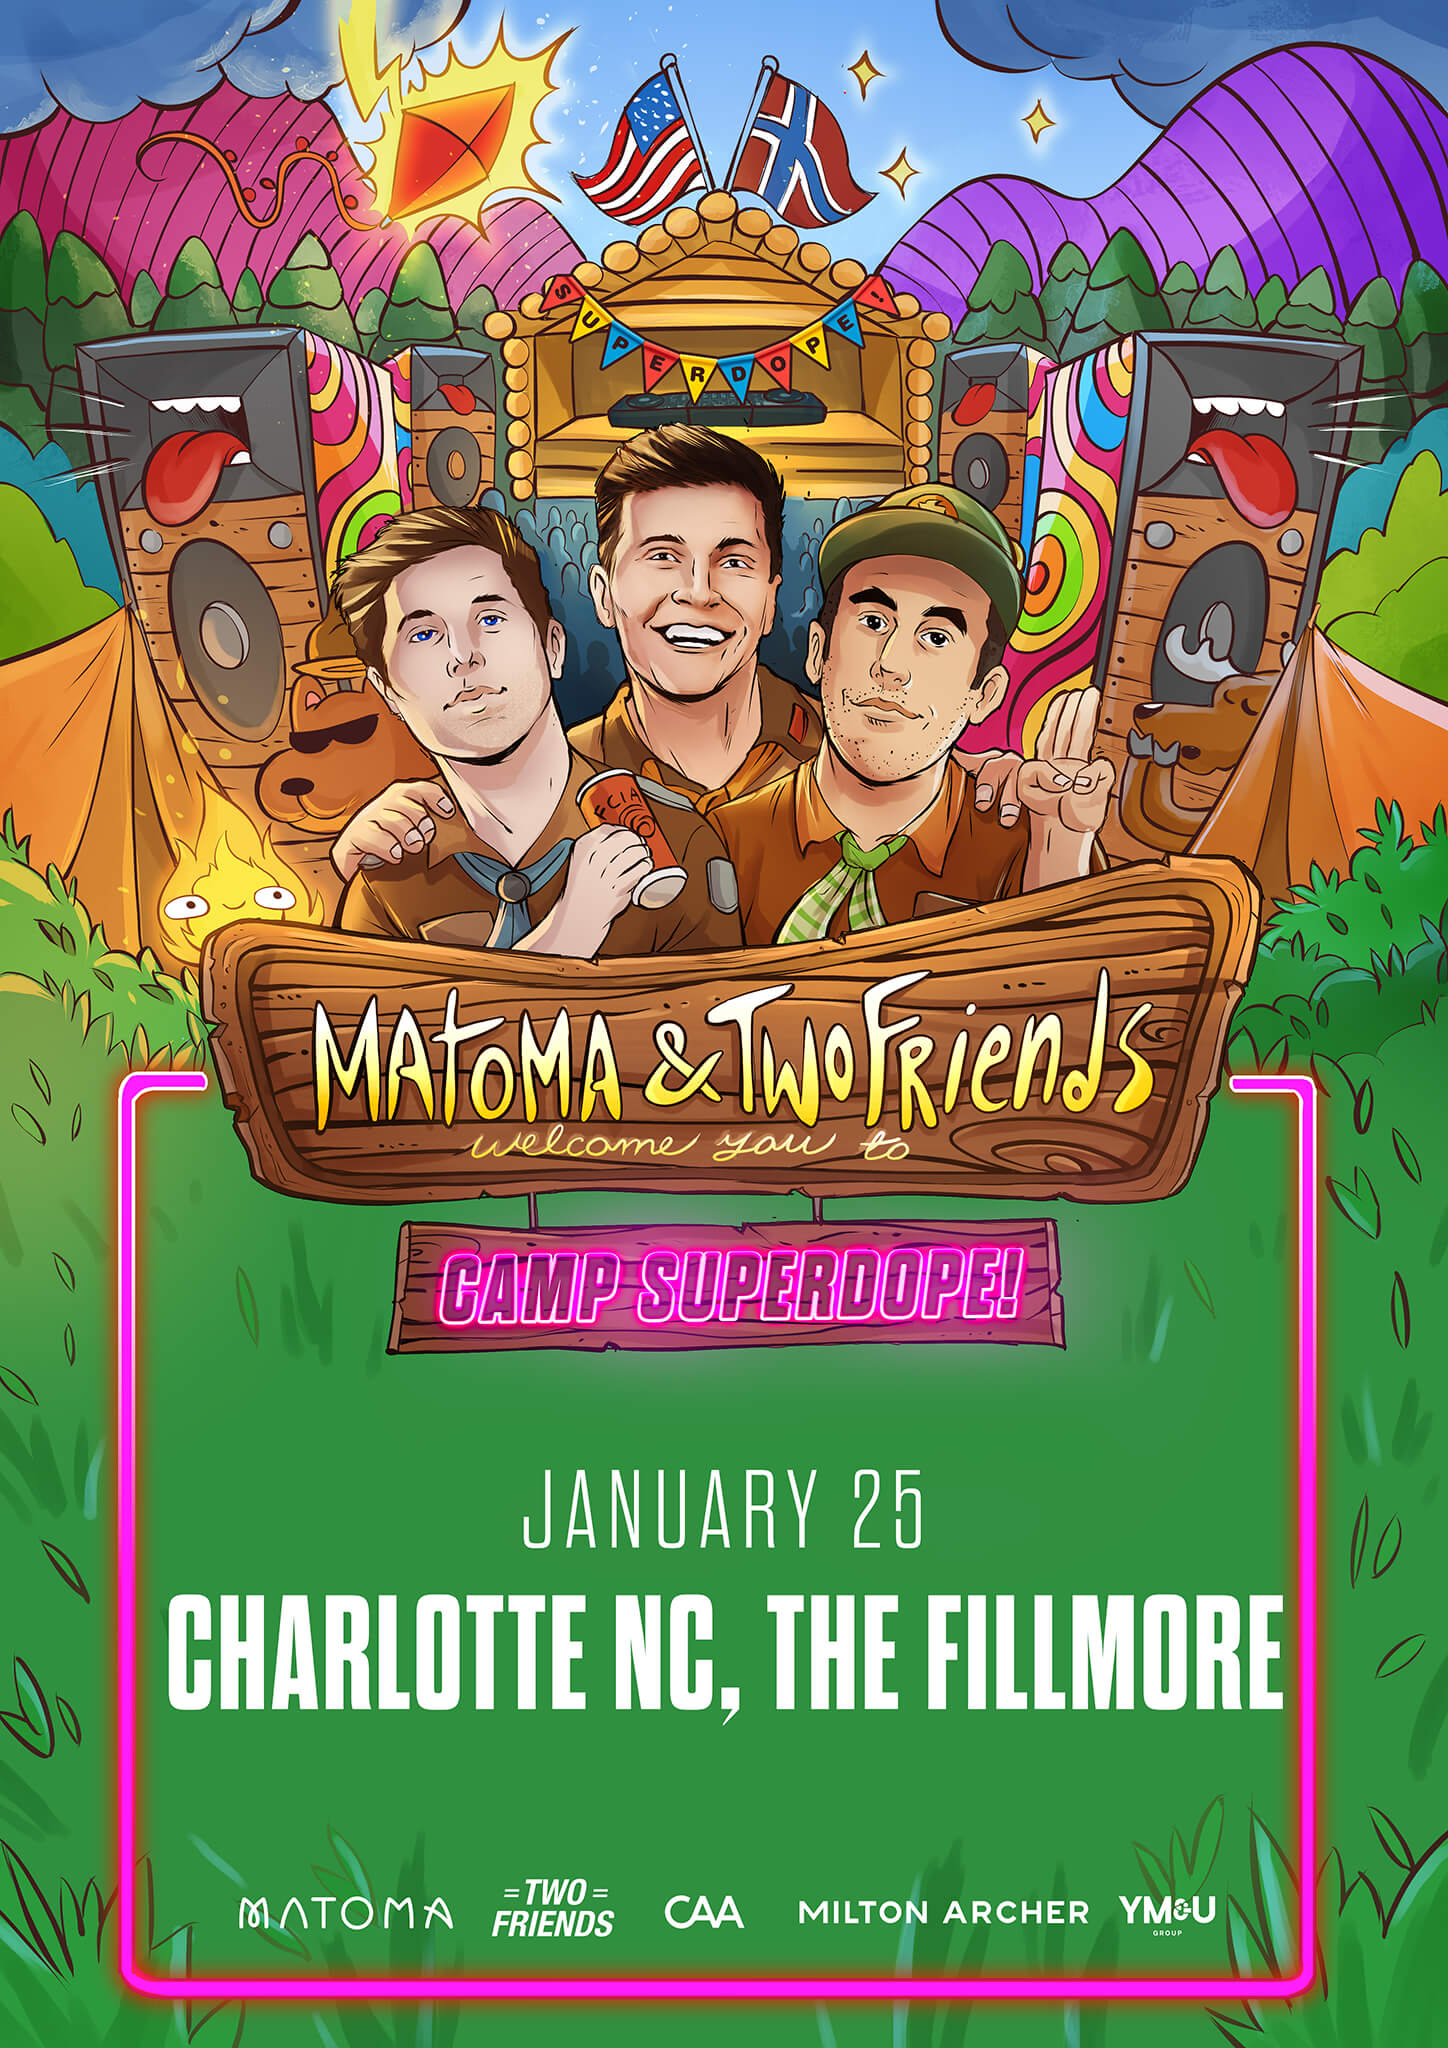 Matoma, Two Friends in Charlotte